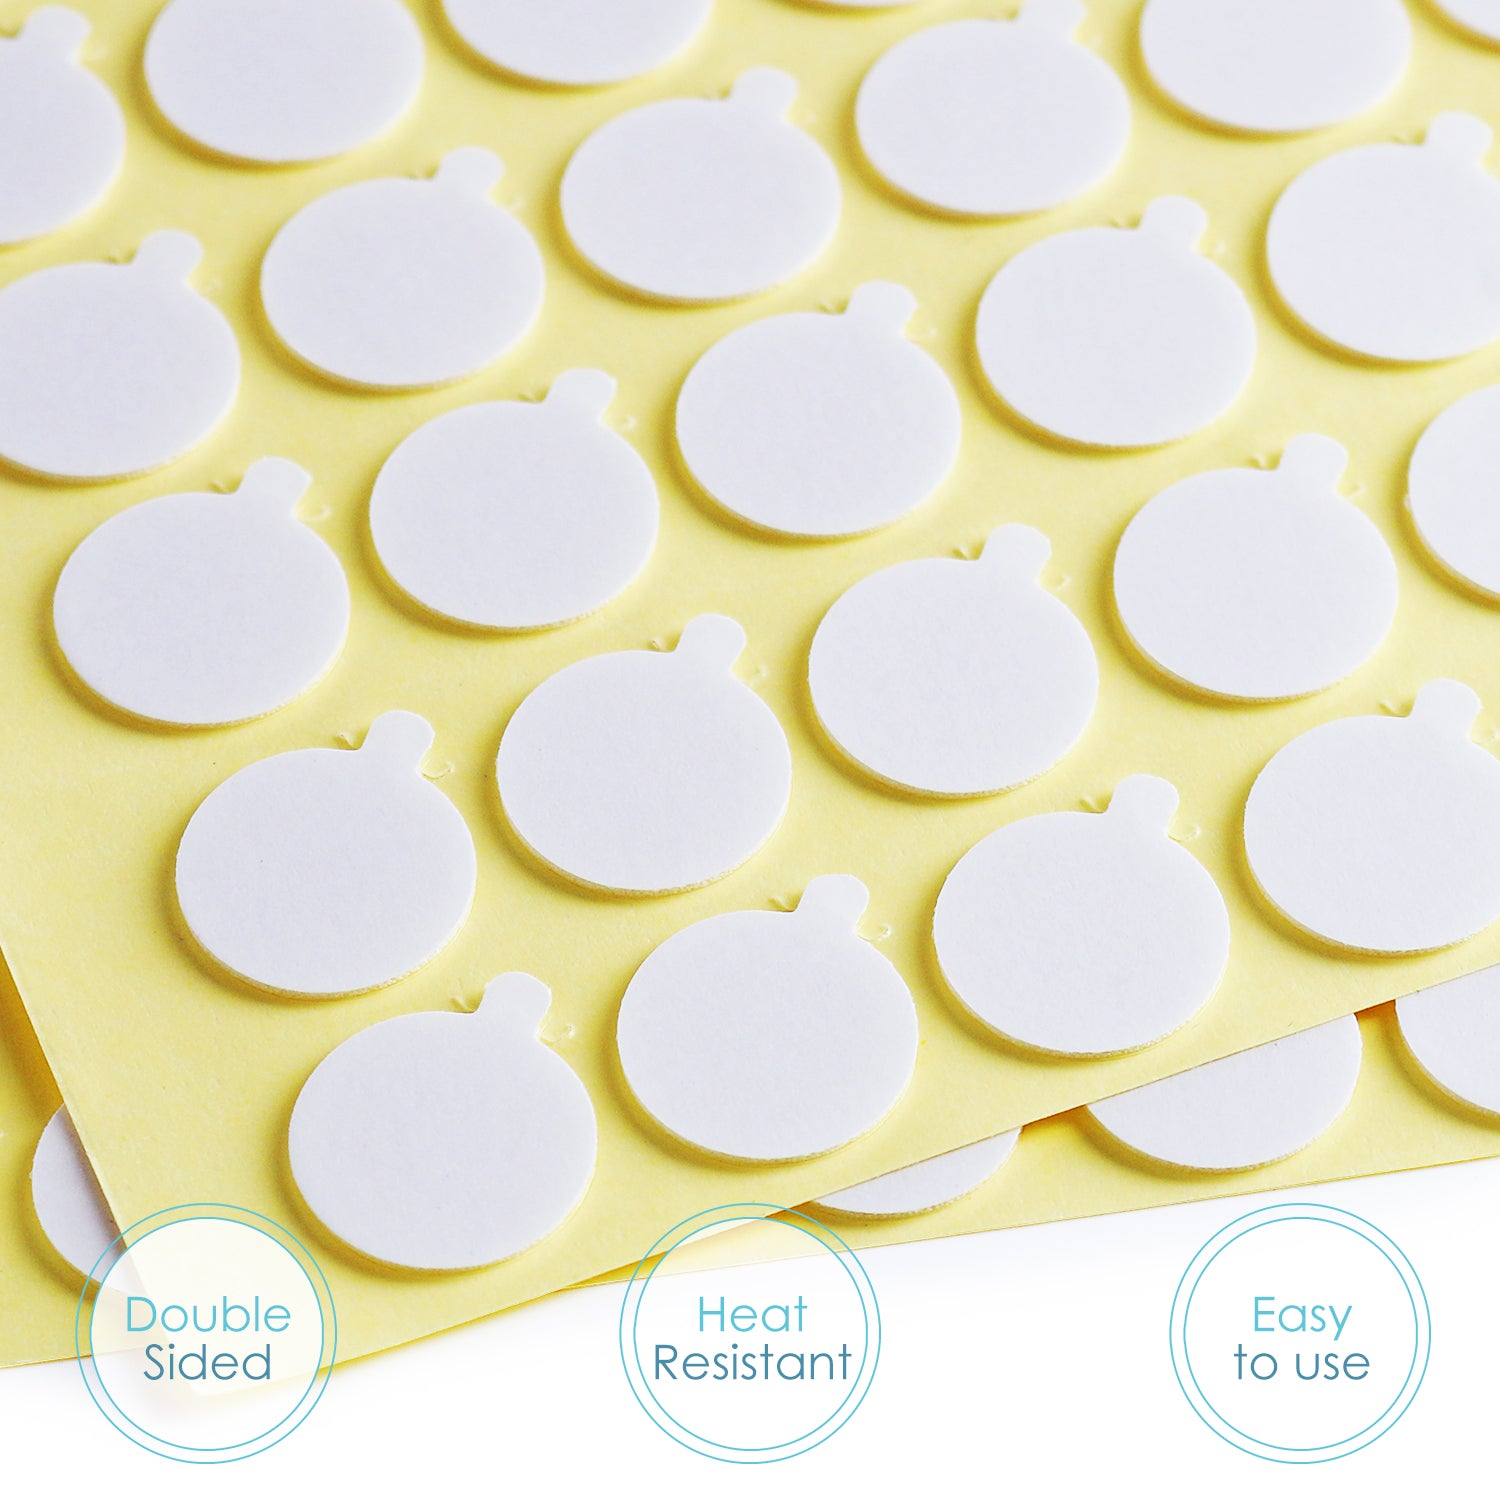 Hearth & Harbor Candle Wick Stickers – 500-Pack of Double-Sided Adhesive Wick Stickers for Candle Making – 20mm Diameter Round Heat-Resistant Adhere Stable – Candle Making Supplies for Easy DIY